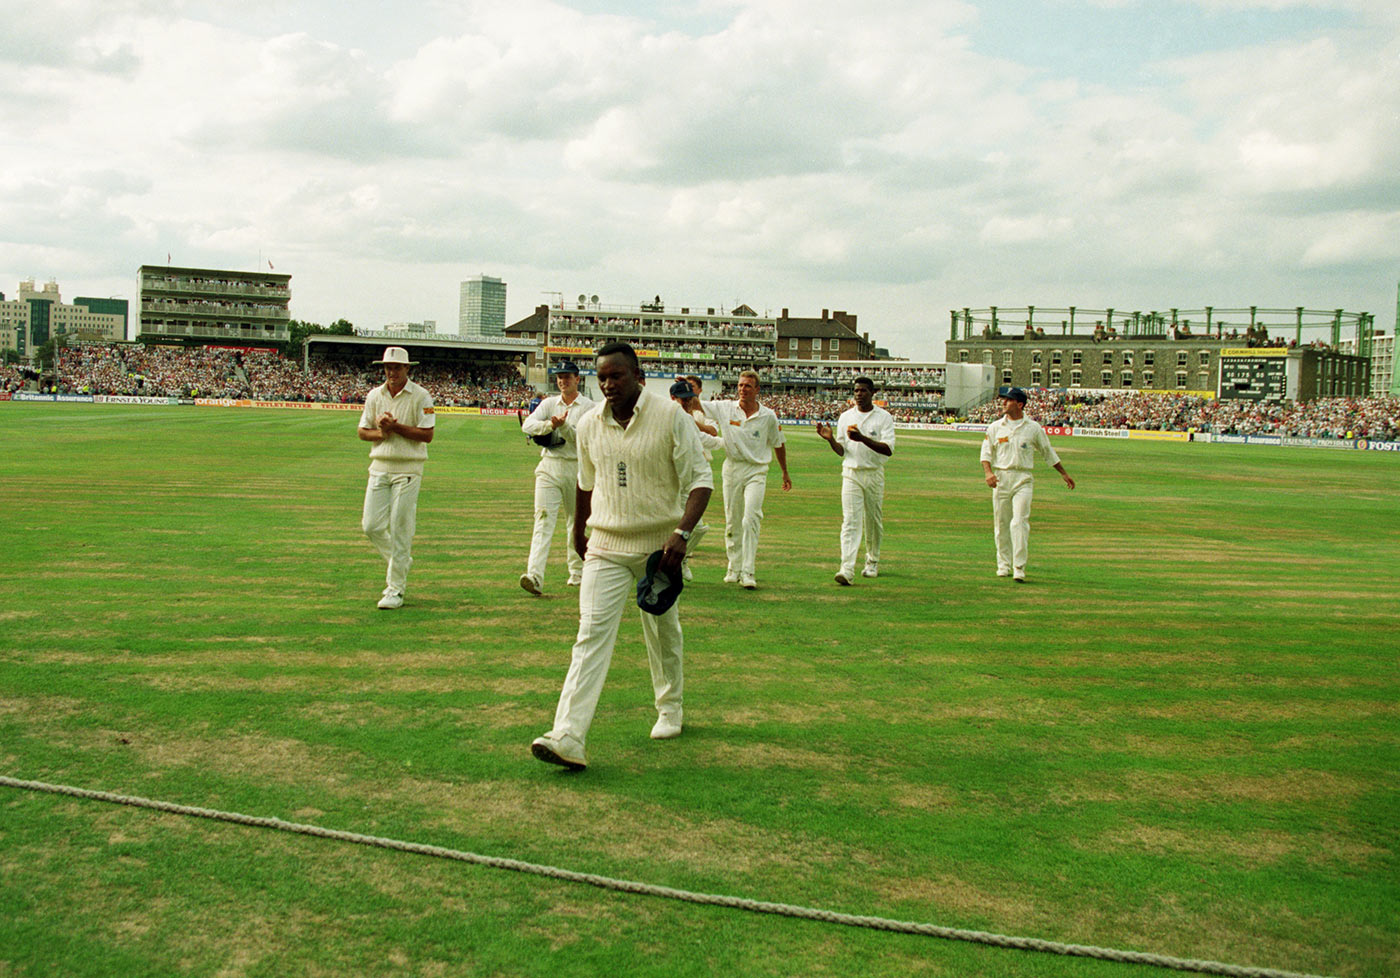 That's me done: Malcolm leads the team off the field on day three